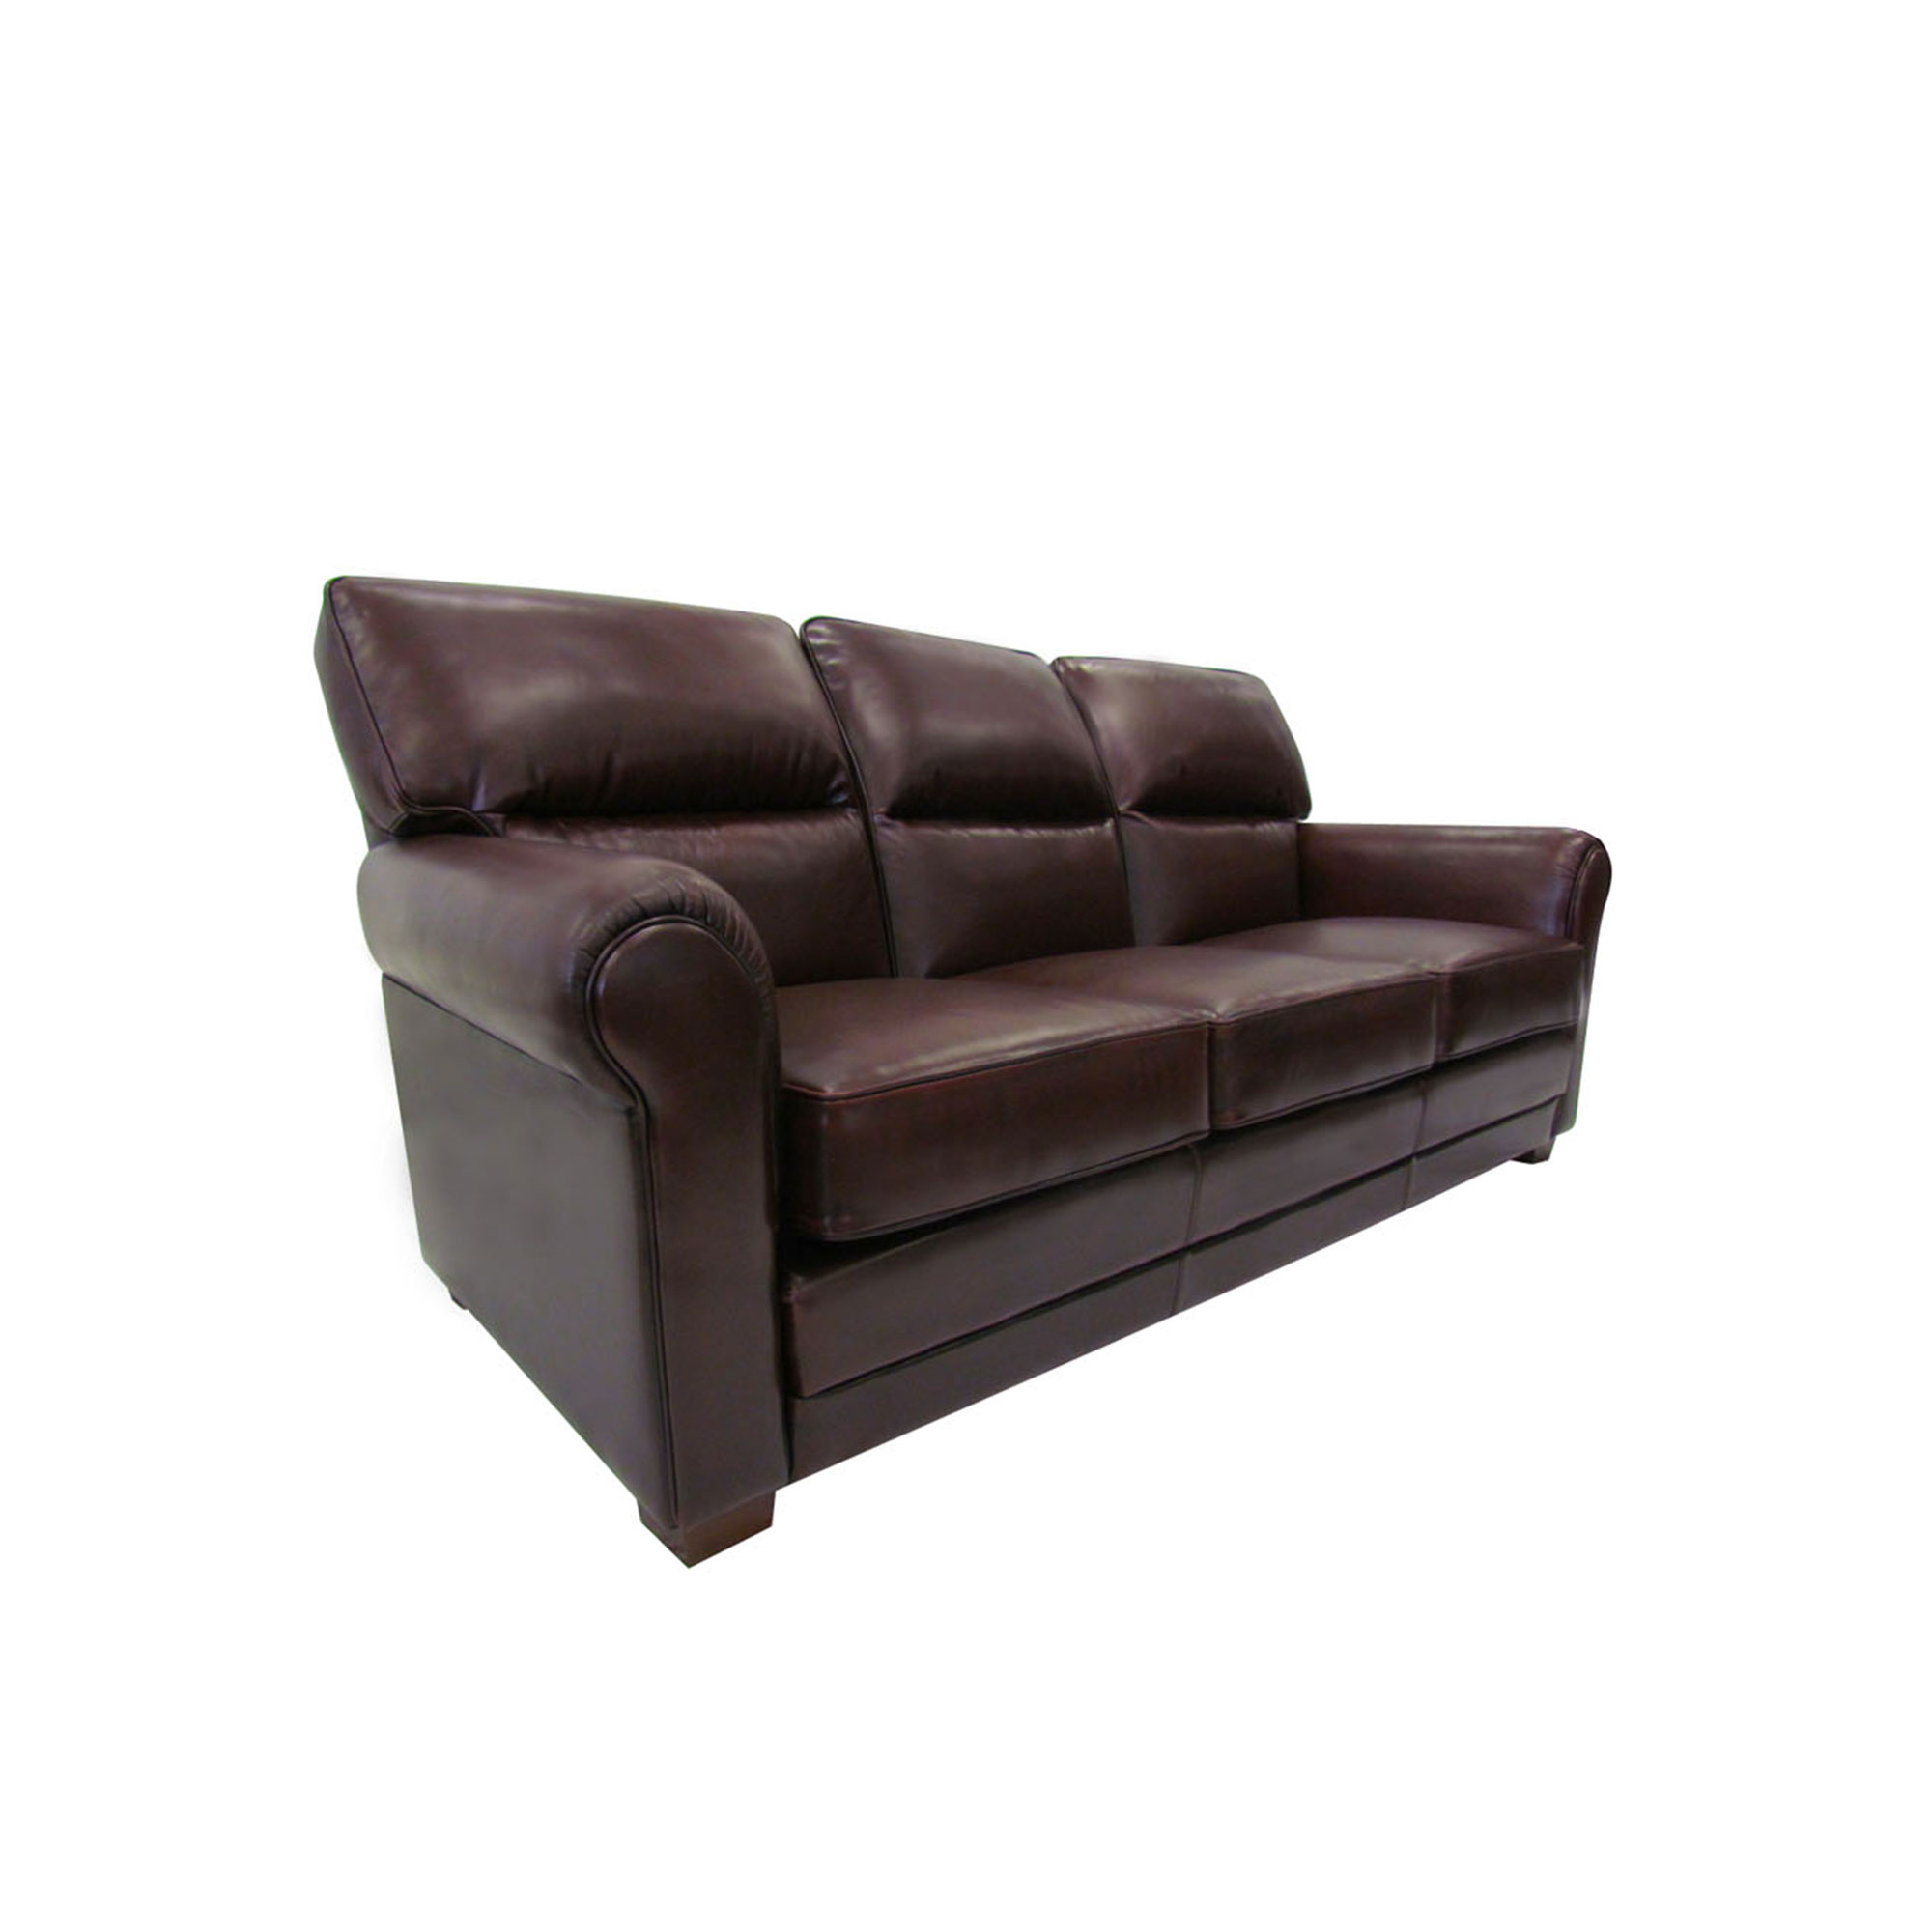 Benson sofa moran furniture for Com furniture